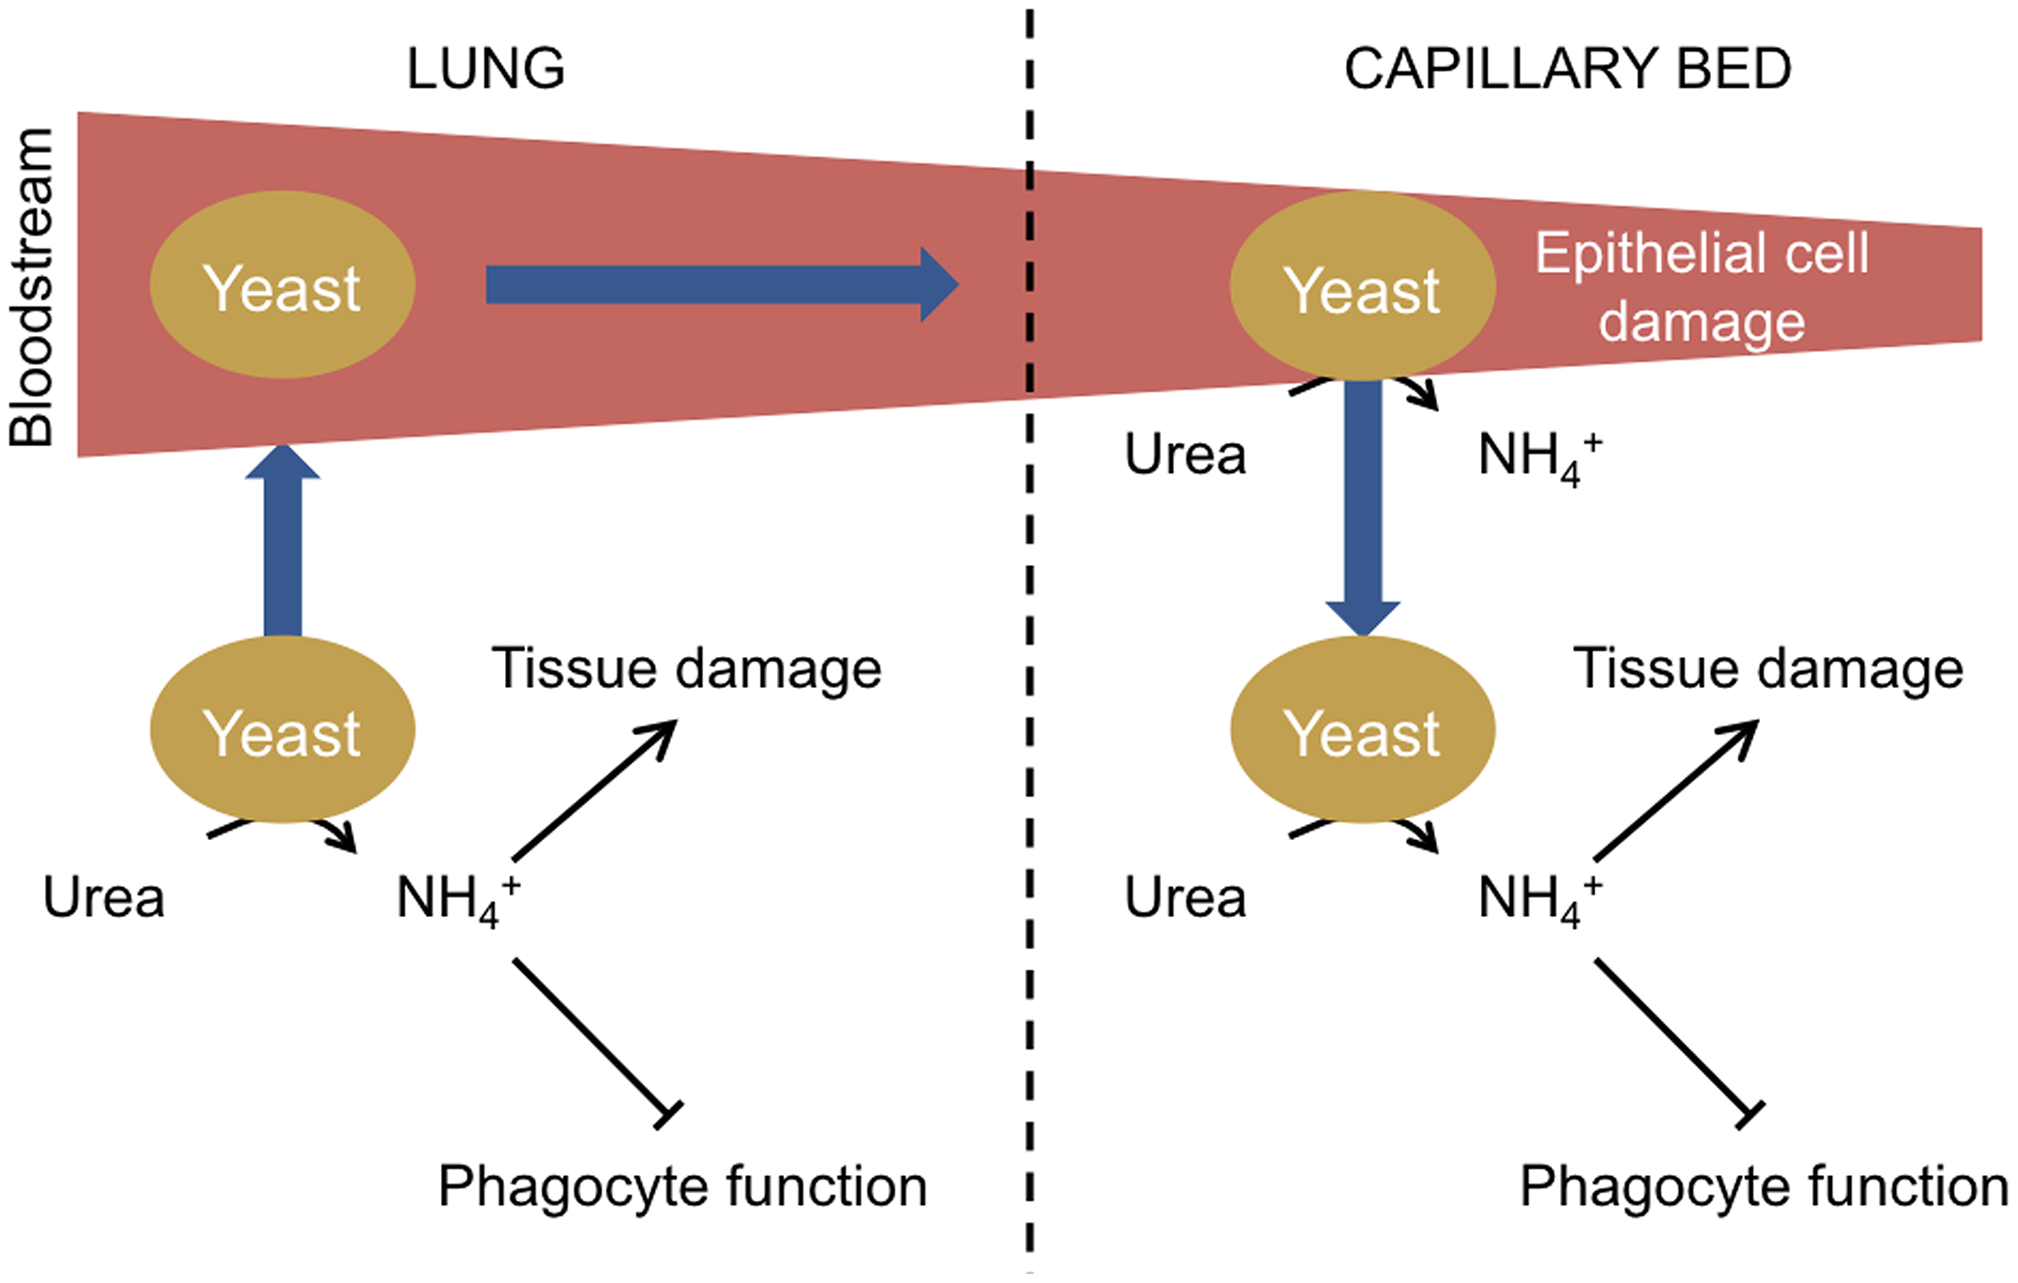 Model of urease function during fungal infection via the lungs.